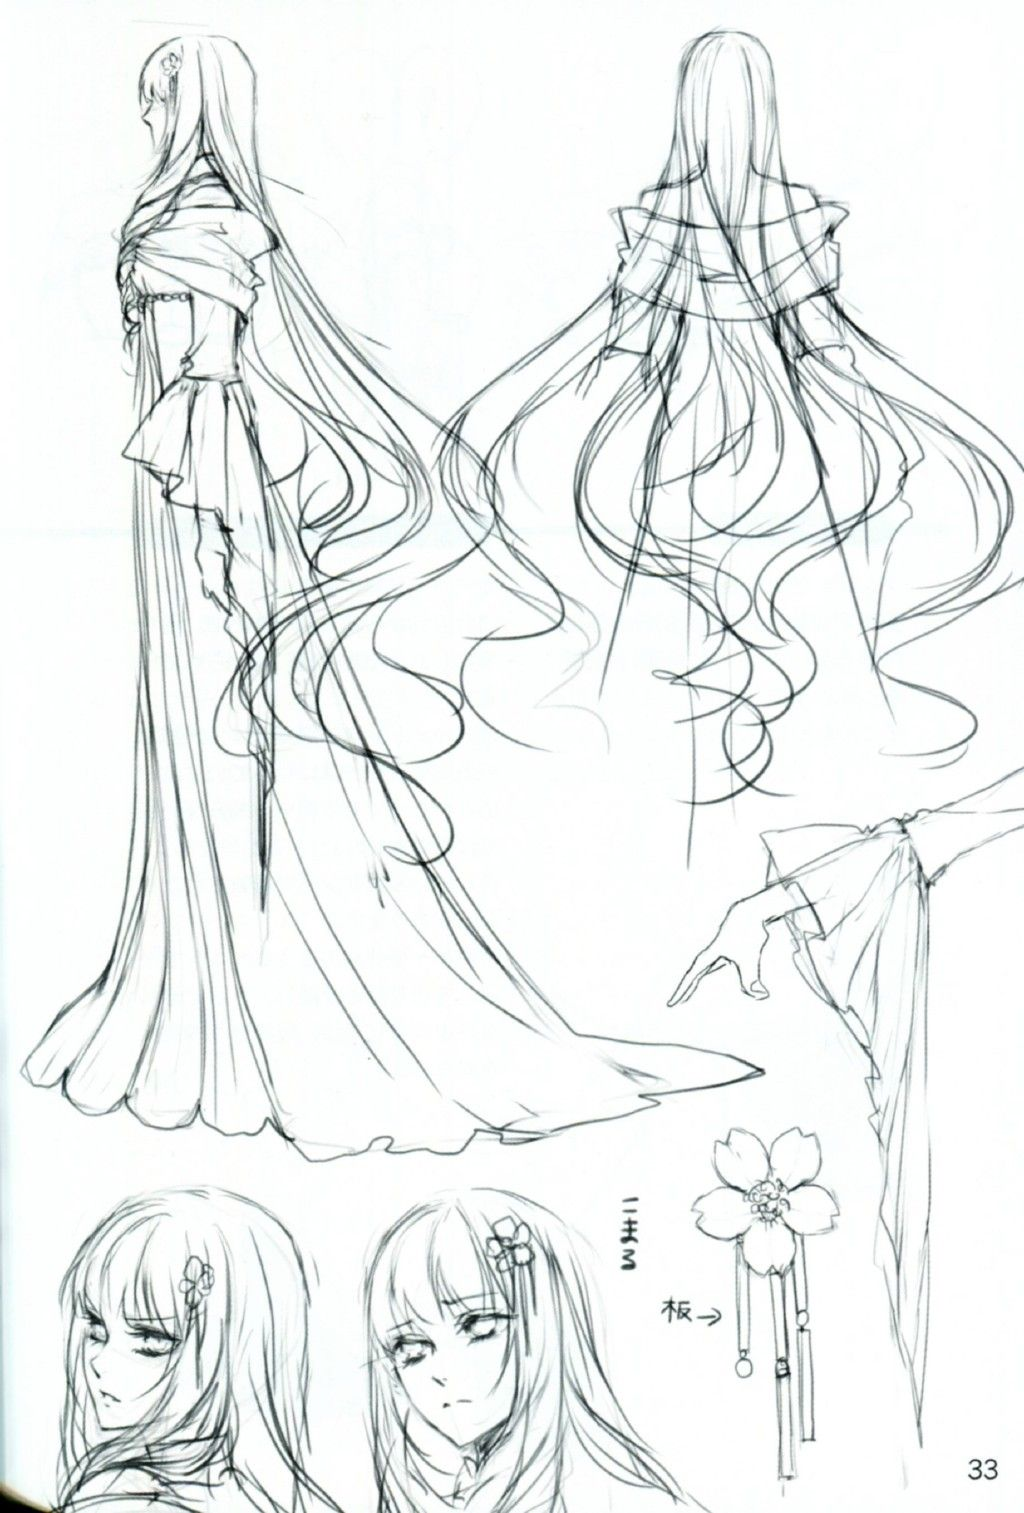 Reine Des Fleurs Tumblr Anime Manga Drawings Manga Drawing